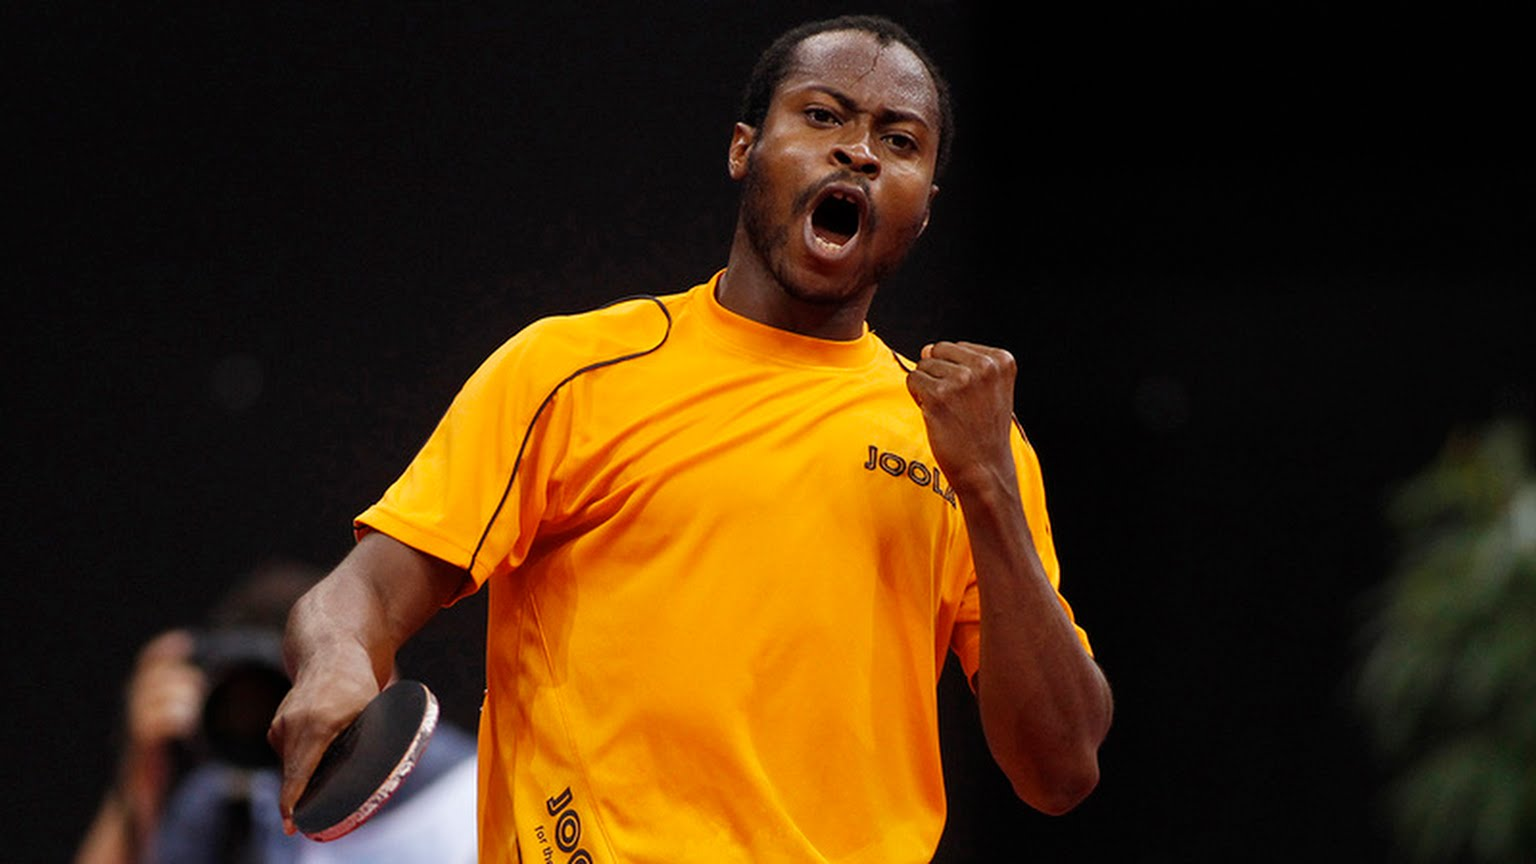 Aruna Quadri speaks on his 'Favorite' tag at ITTF Nigeria Open